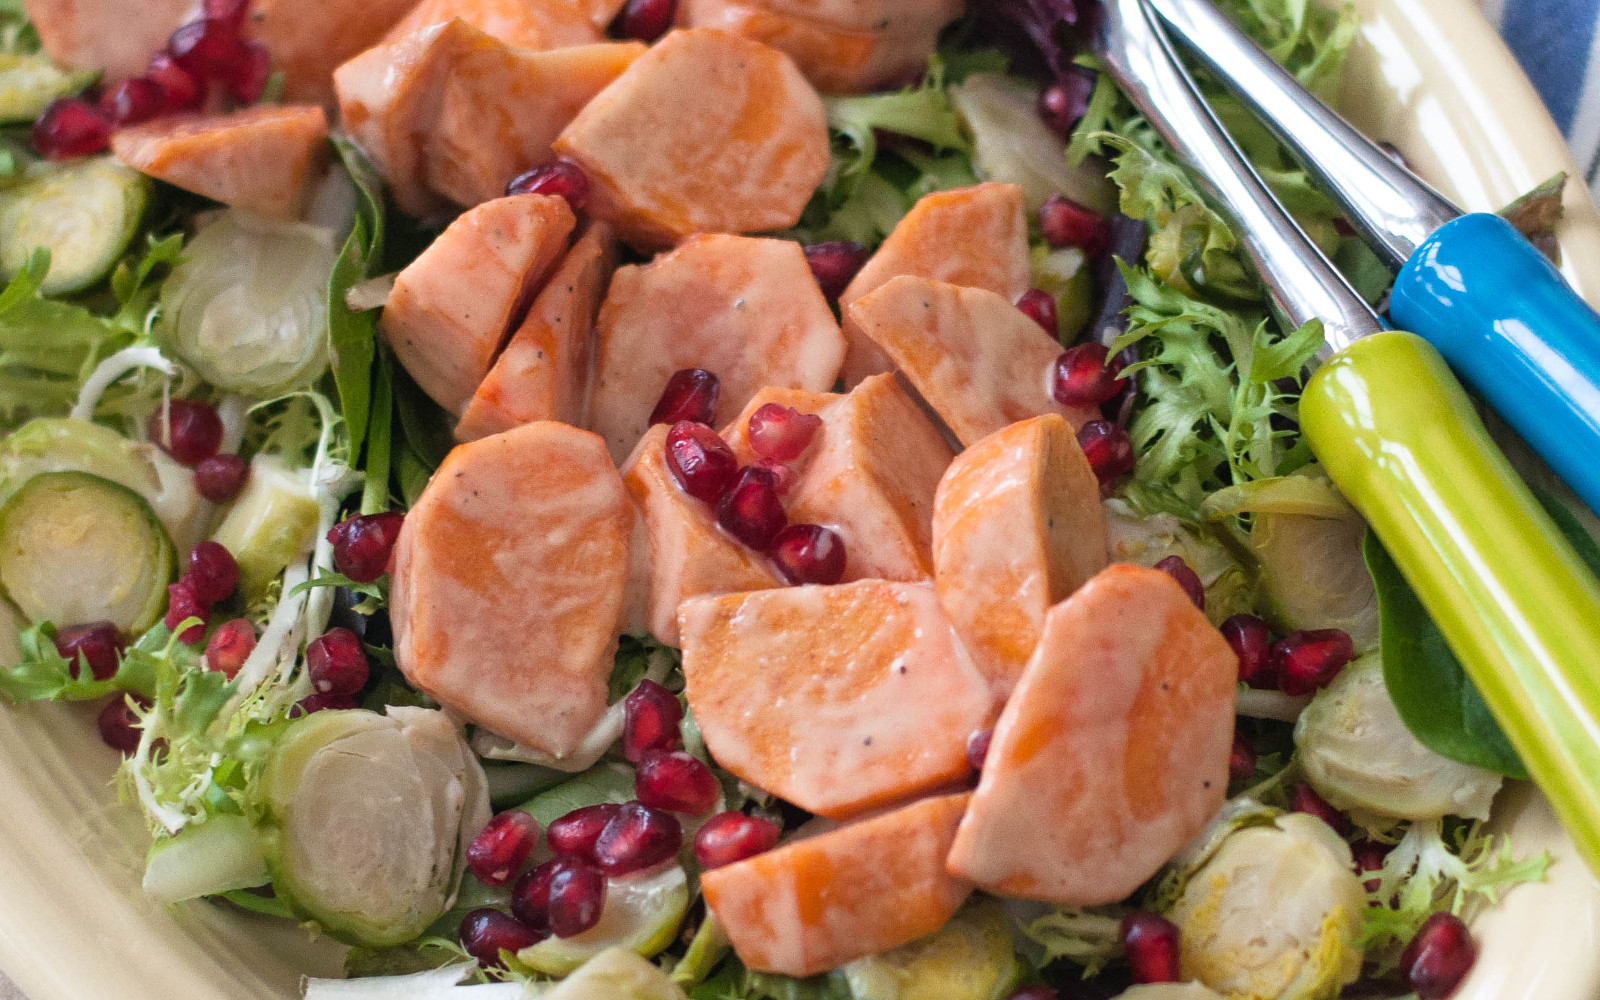 Fresh Winter Salad With Persimmon, Brussels Sprouts, and a Creamy Maple-Tahini Dressing